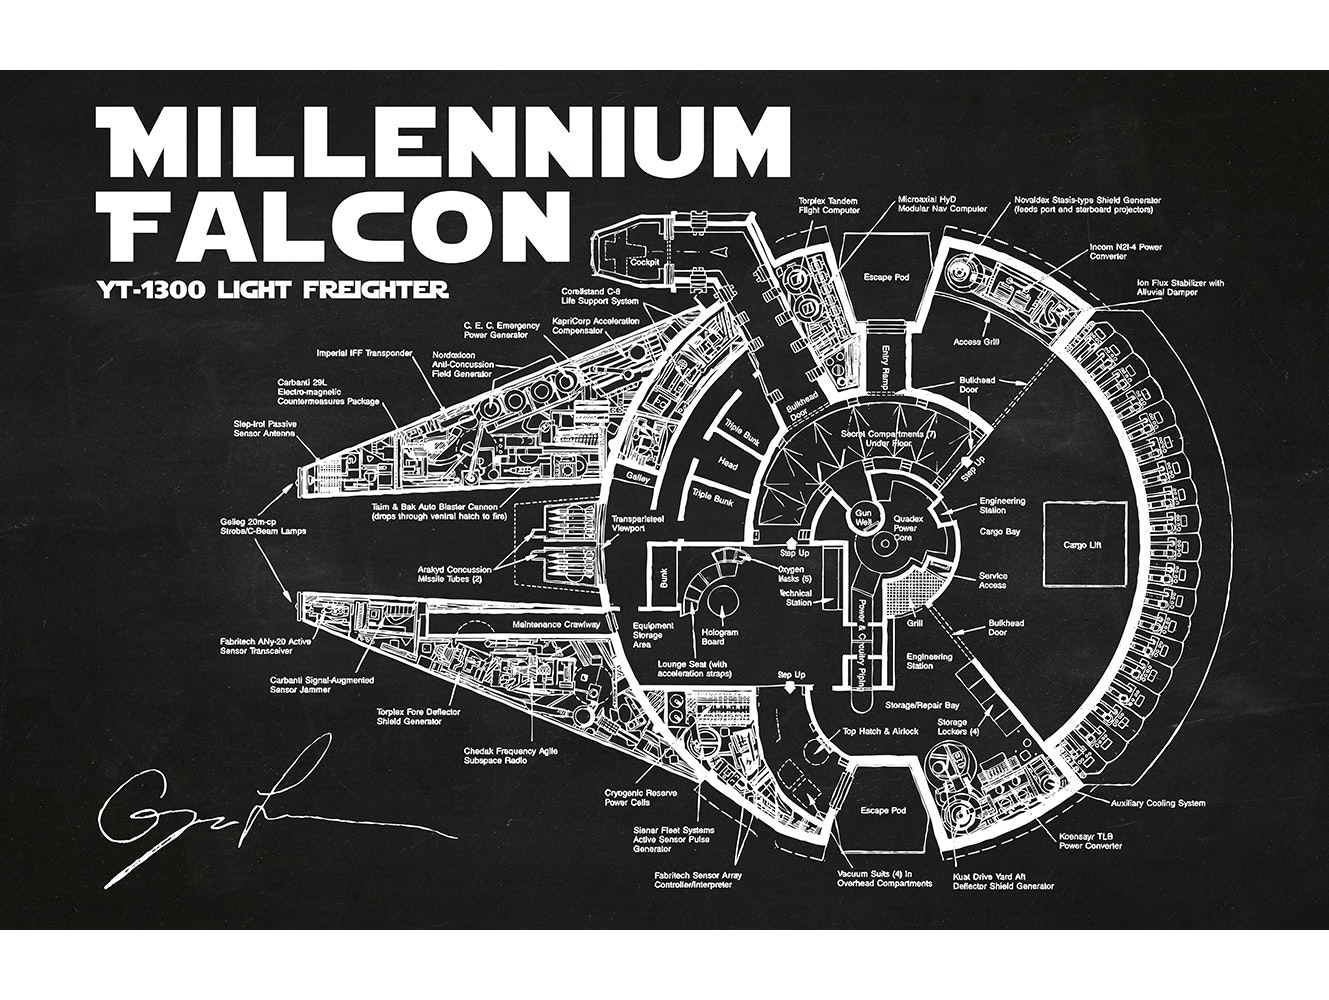 Star Wars - Millennium Falcon Floorplan